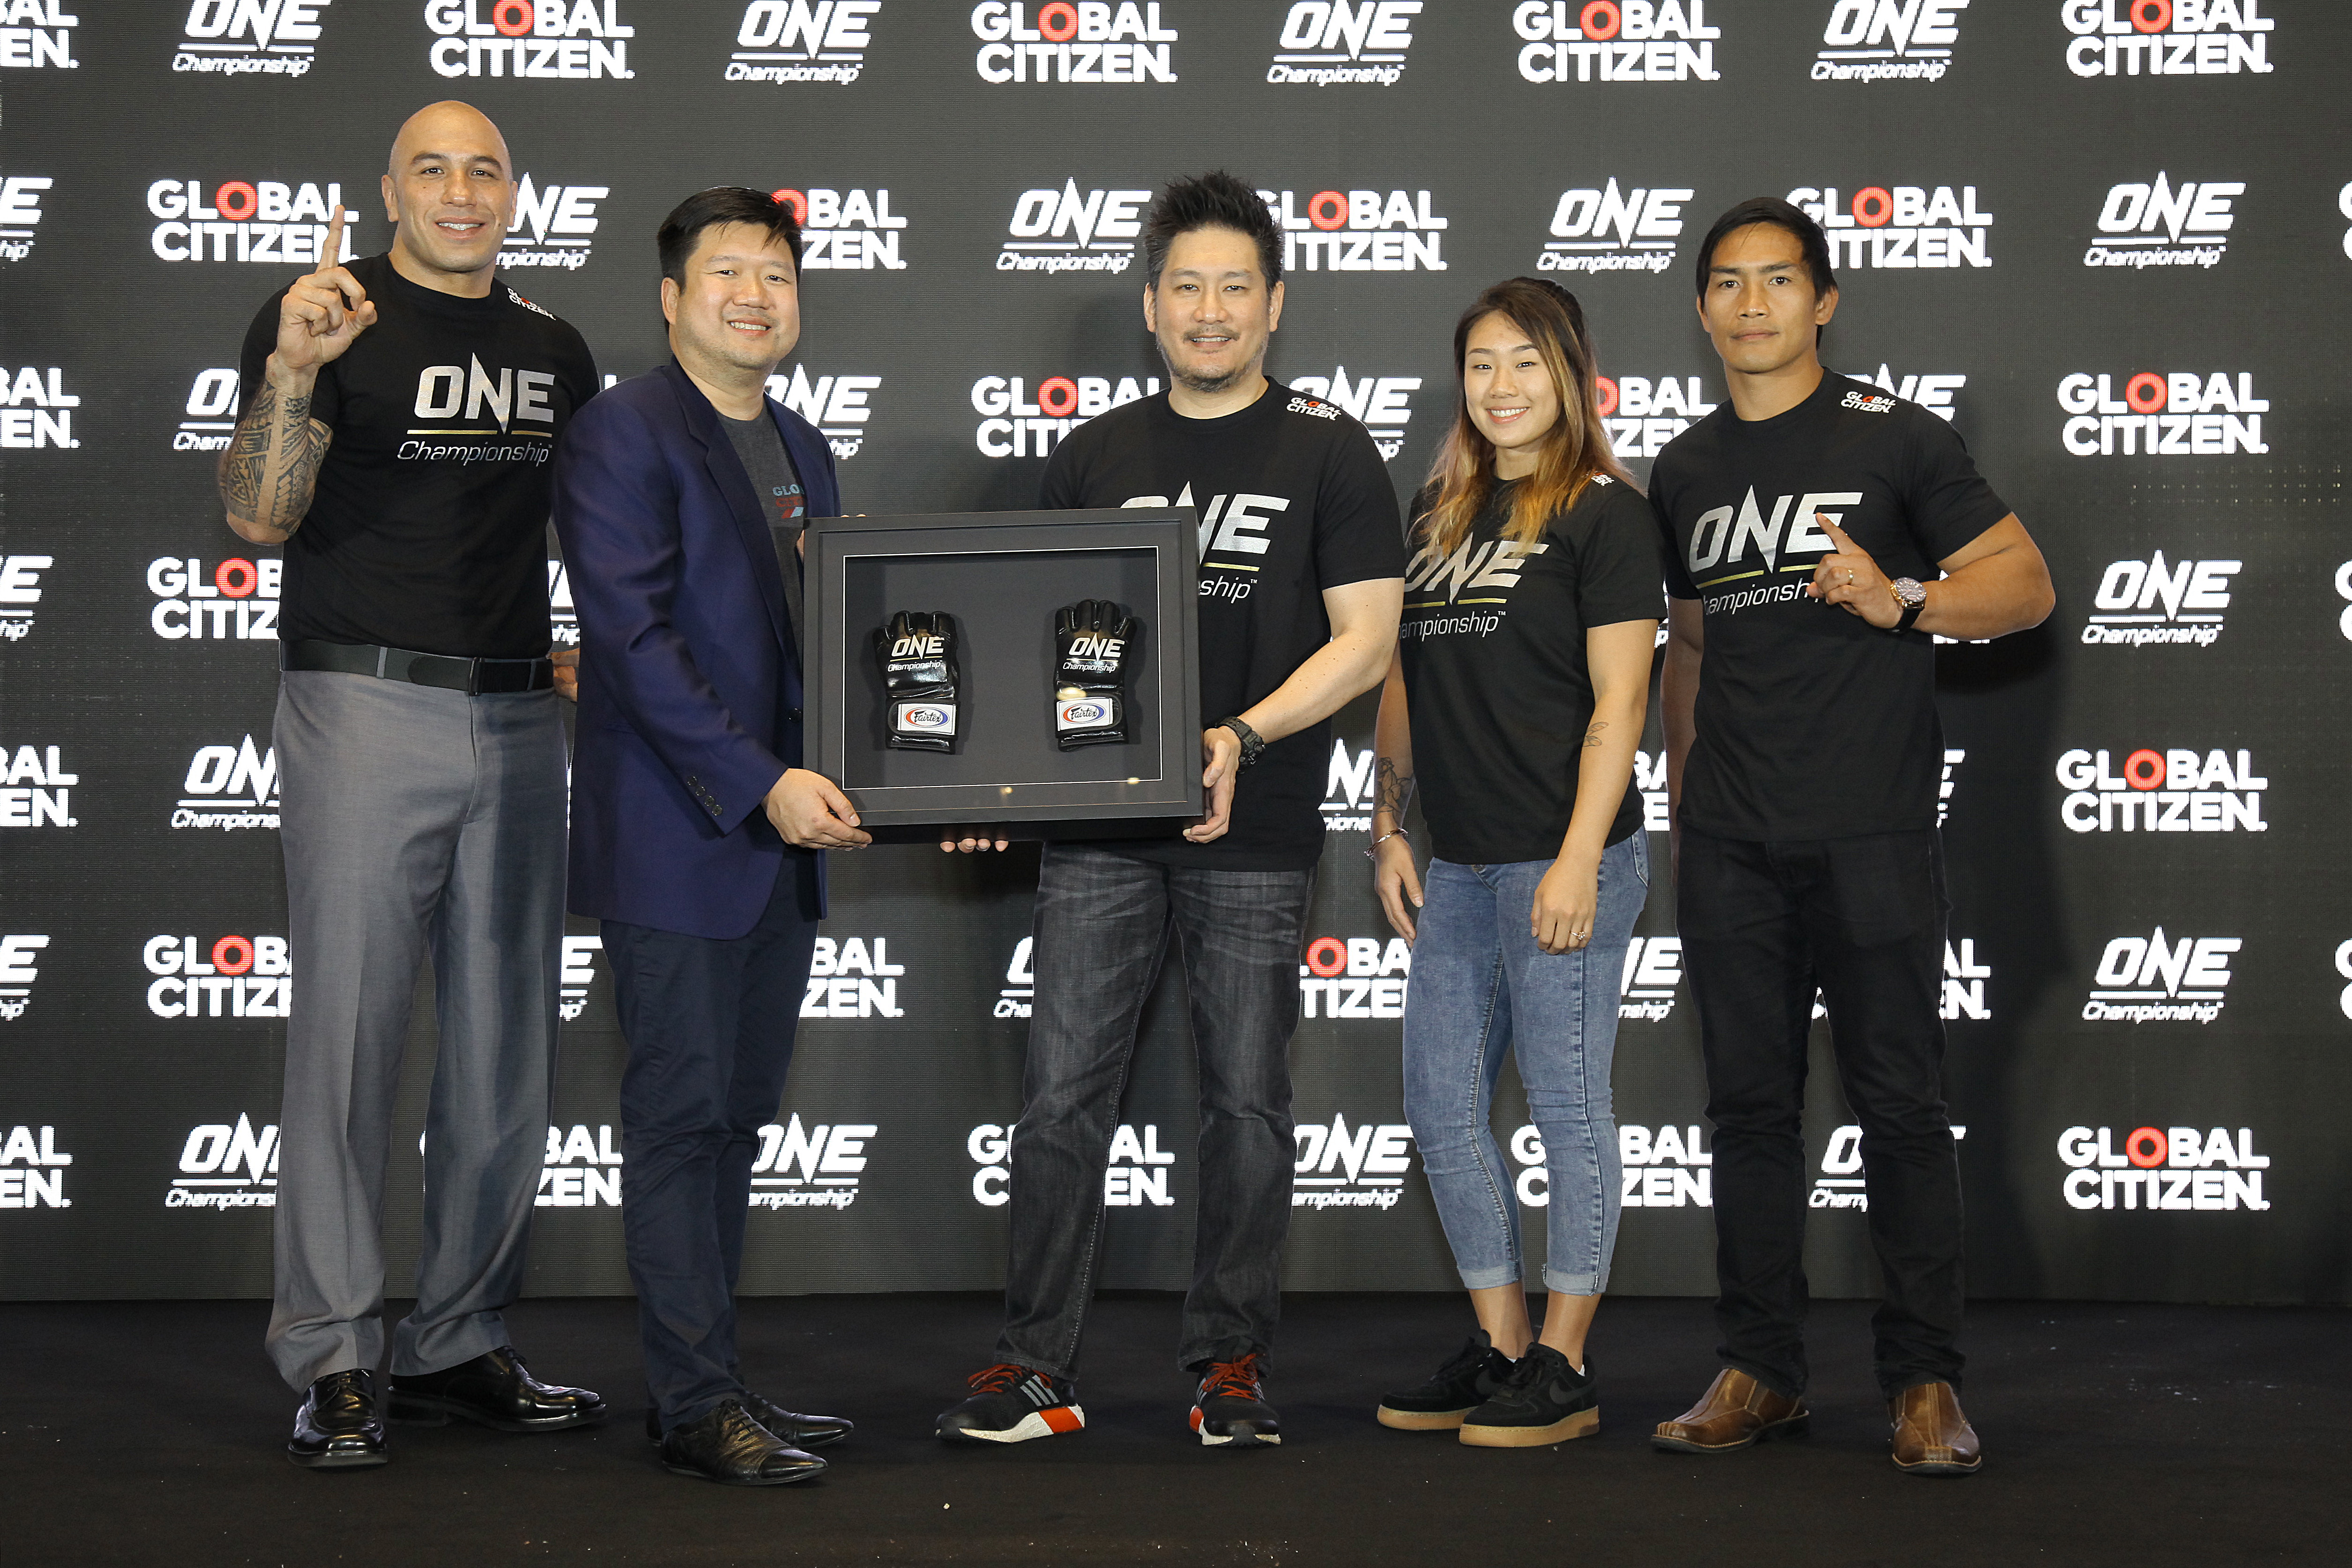 ONE CHAMPIONSHIP AND GLOBAL CITIZEN TEAM UP TO END EXTREME POVERTY BY 2030 -